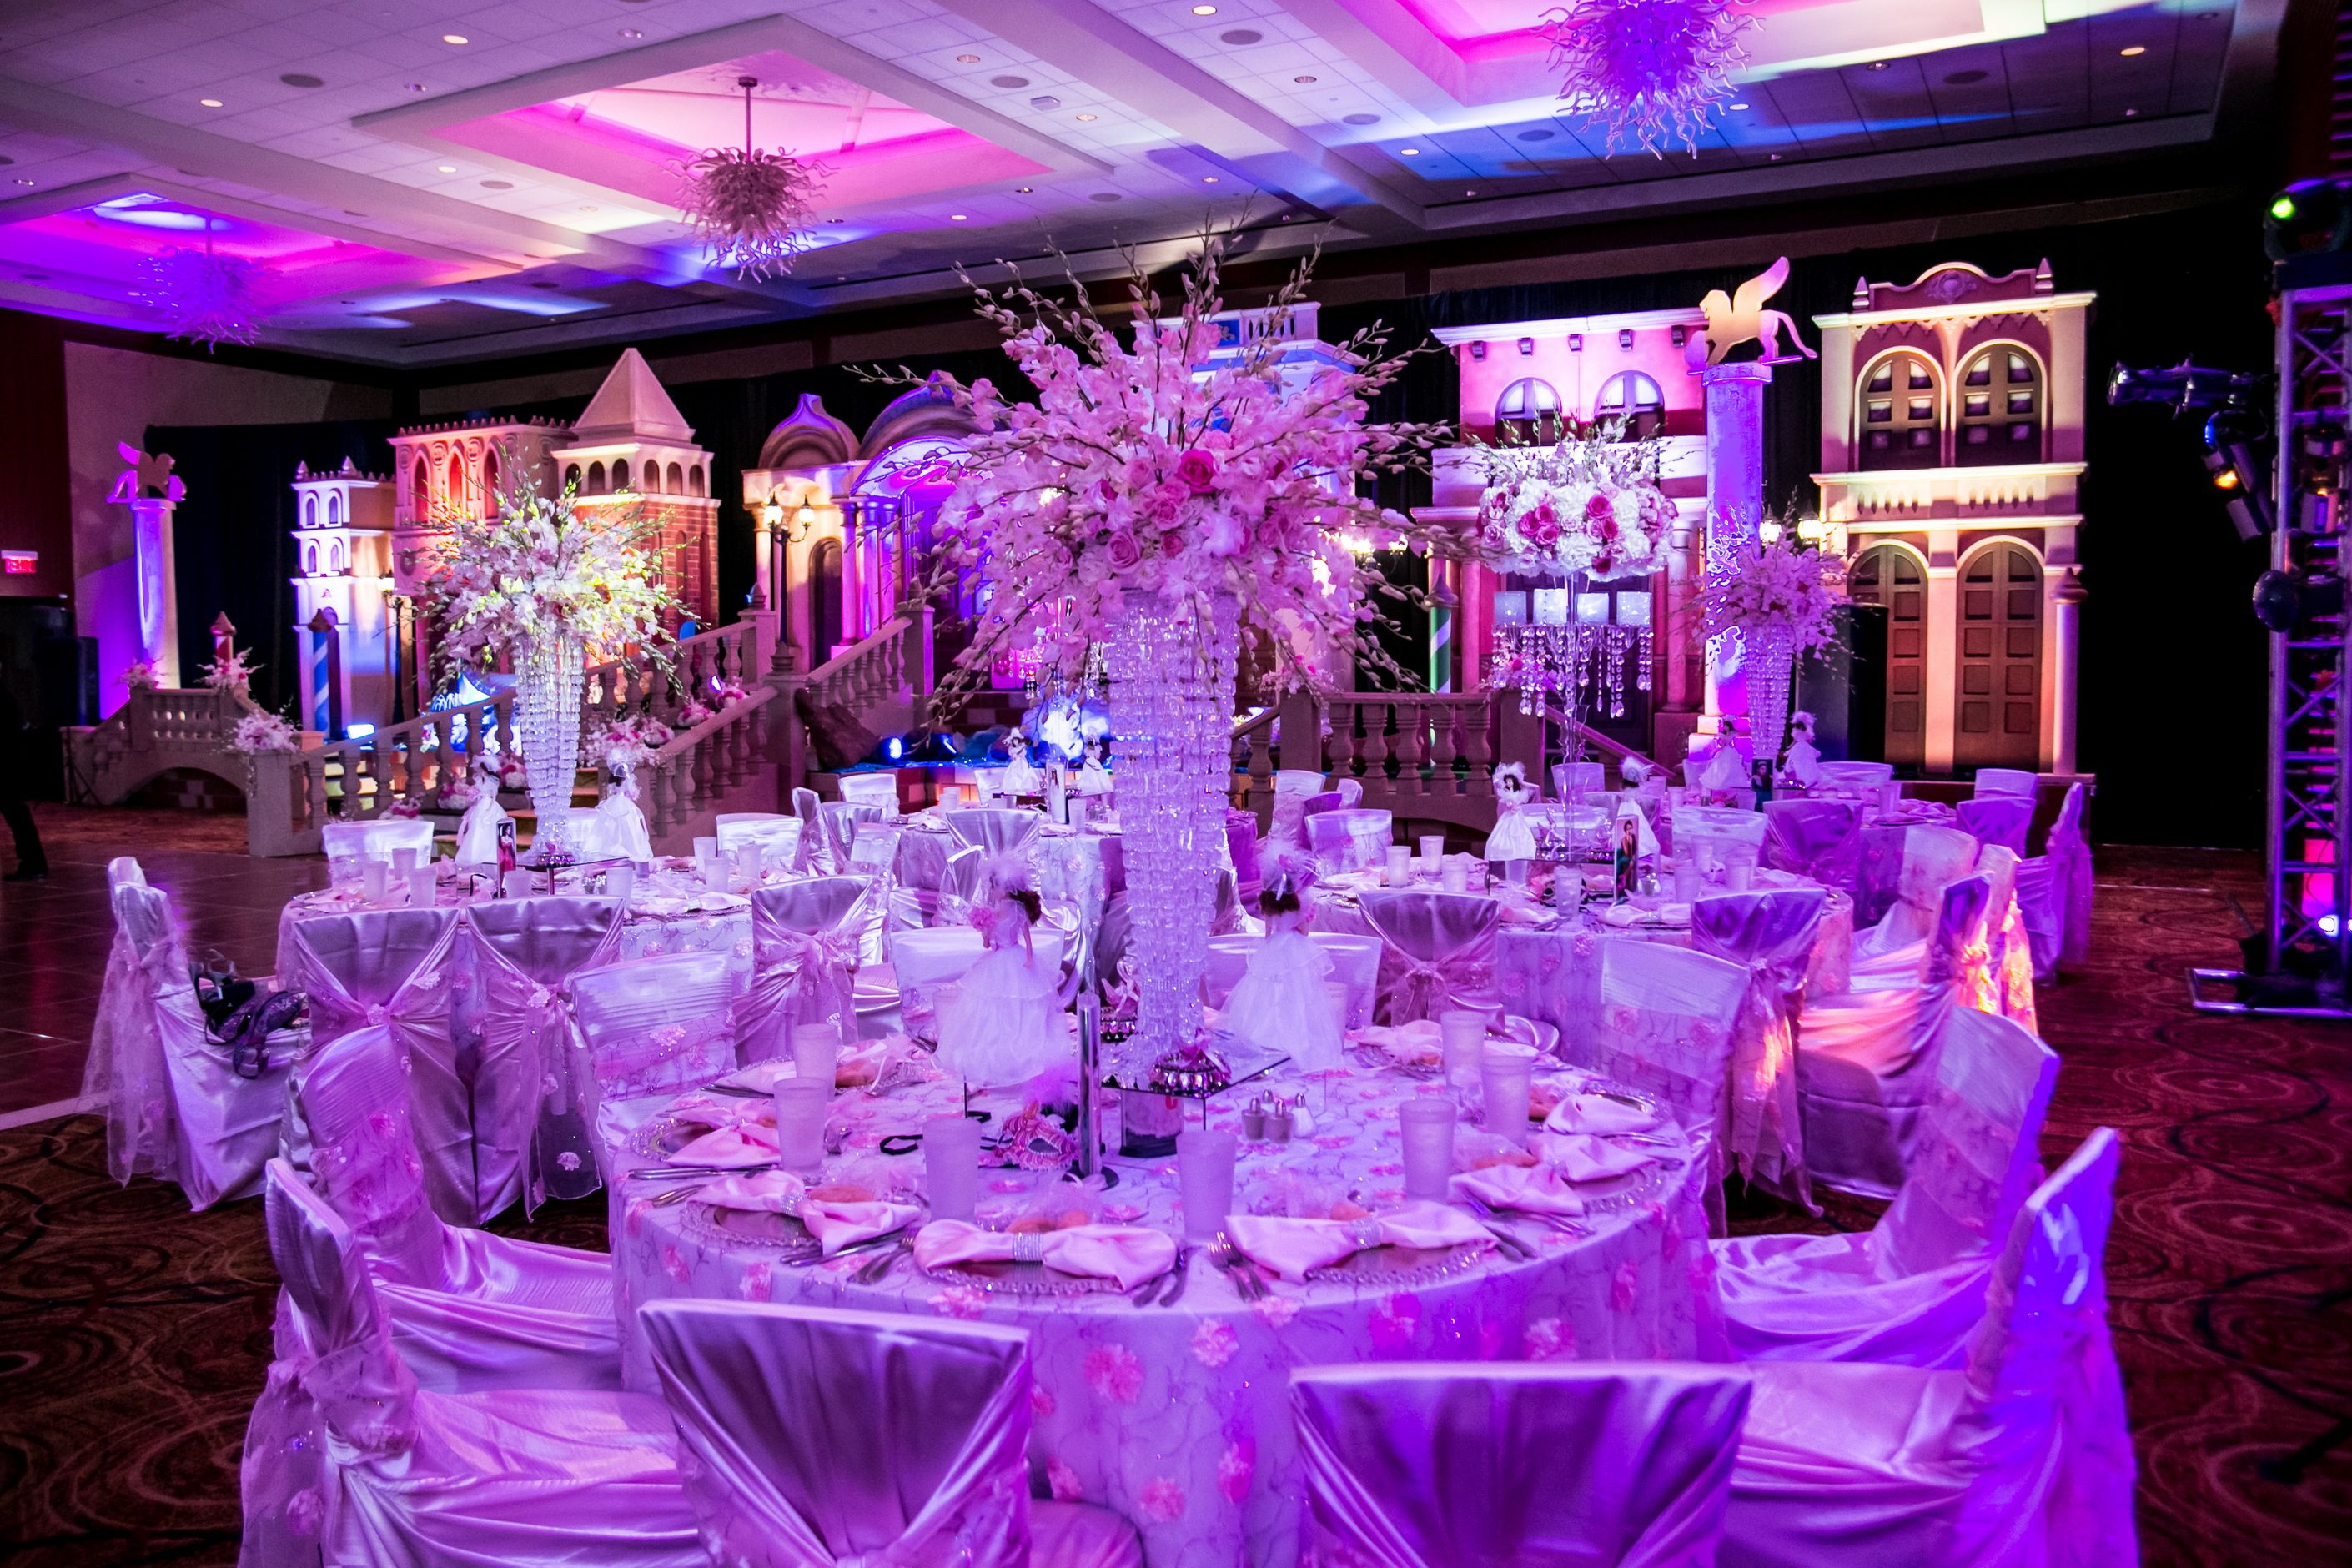 What An Elegant Table Setting For This Quinceanera #Quinceanera #Ballroom